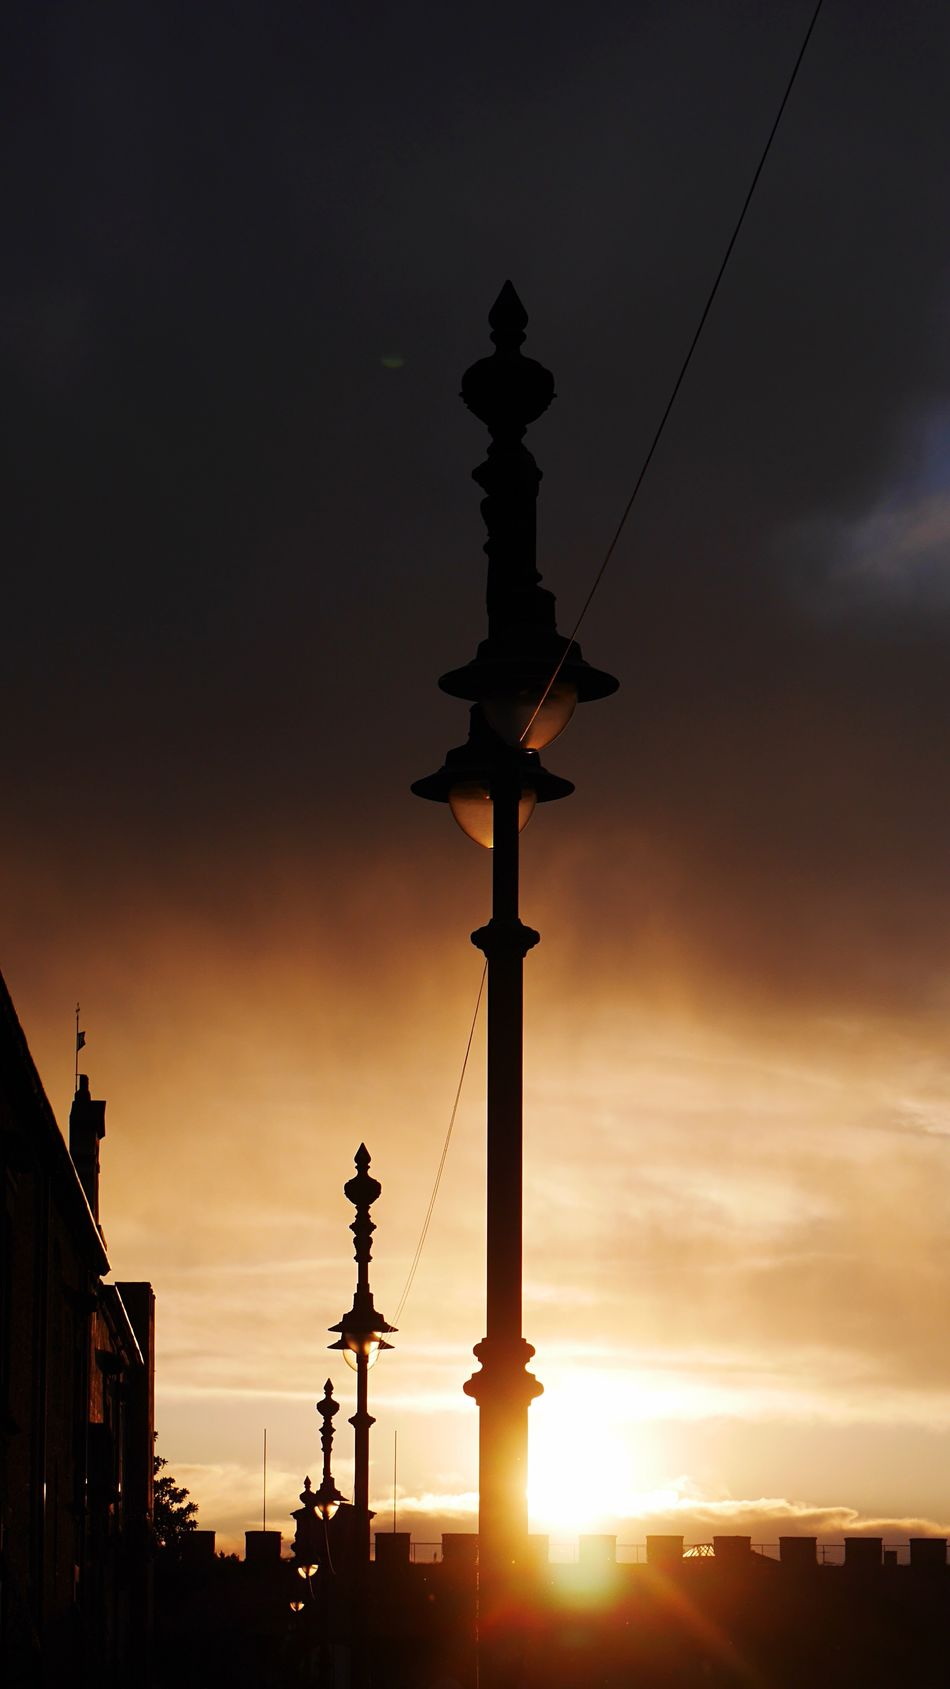 Sunset Silhouette Sky Street Light Outdoors Cloud - Sky Illuminated City Urban Exploration Urbanphotography Street Street Photography Streetphotography Light And Shadow Pisa Italy Nature Landscape Landscape_Collection Landscape_photography Clouds And Sky After The Rain